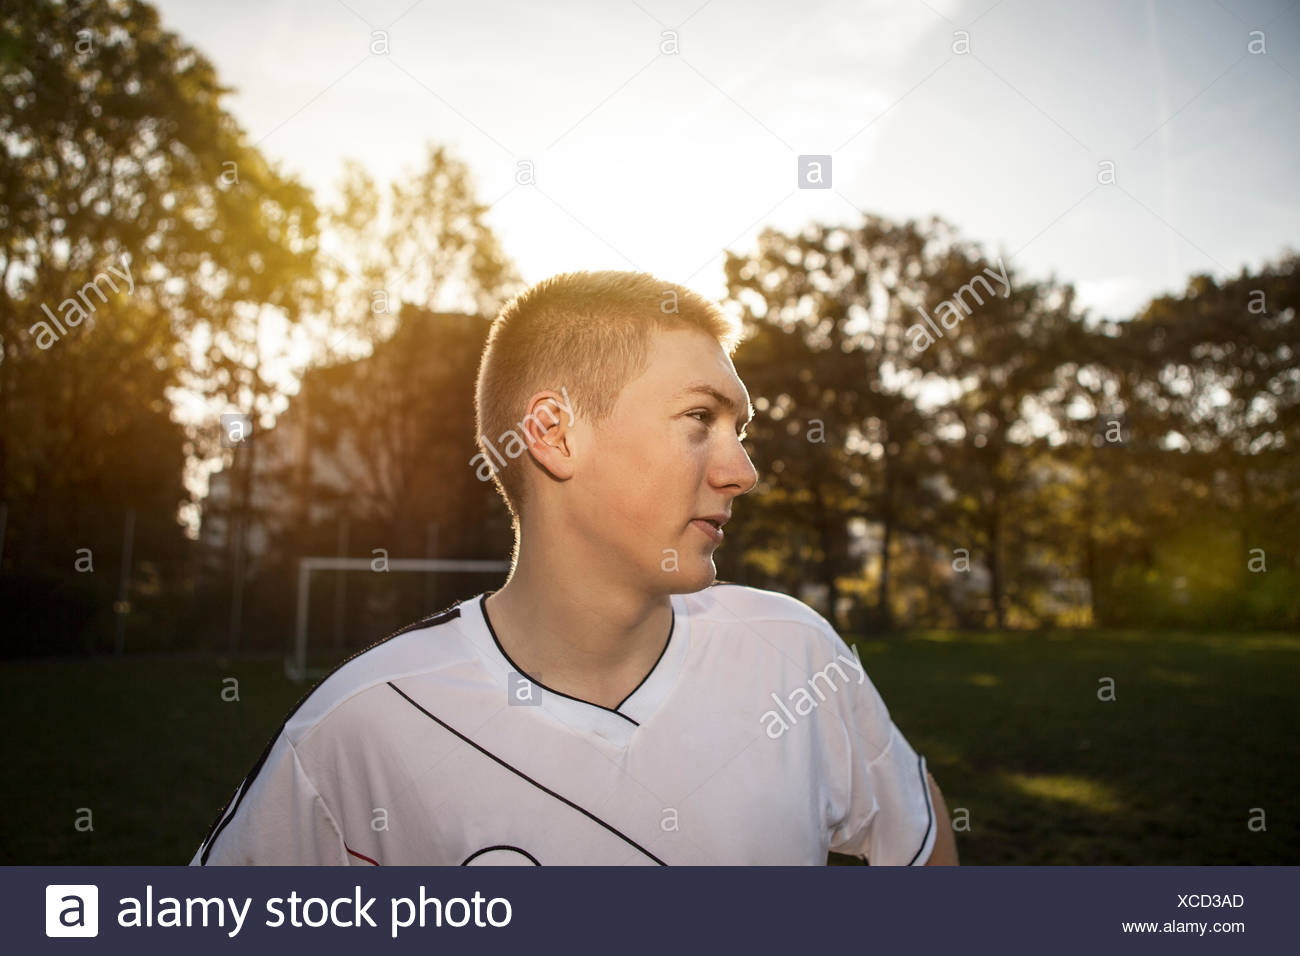 Teenager on soccer pitch looking around - Stock Image